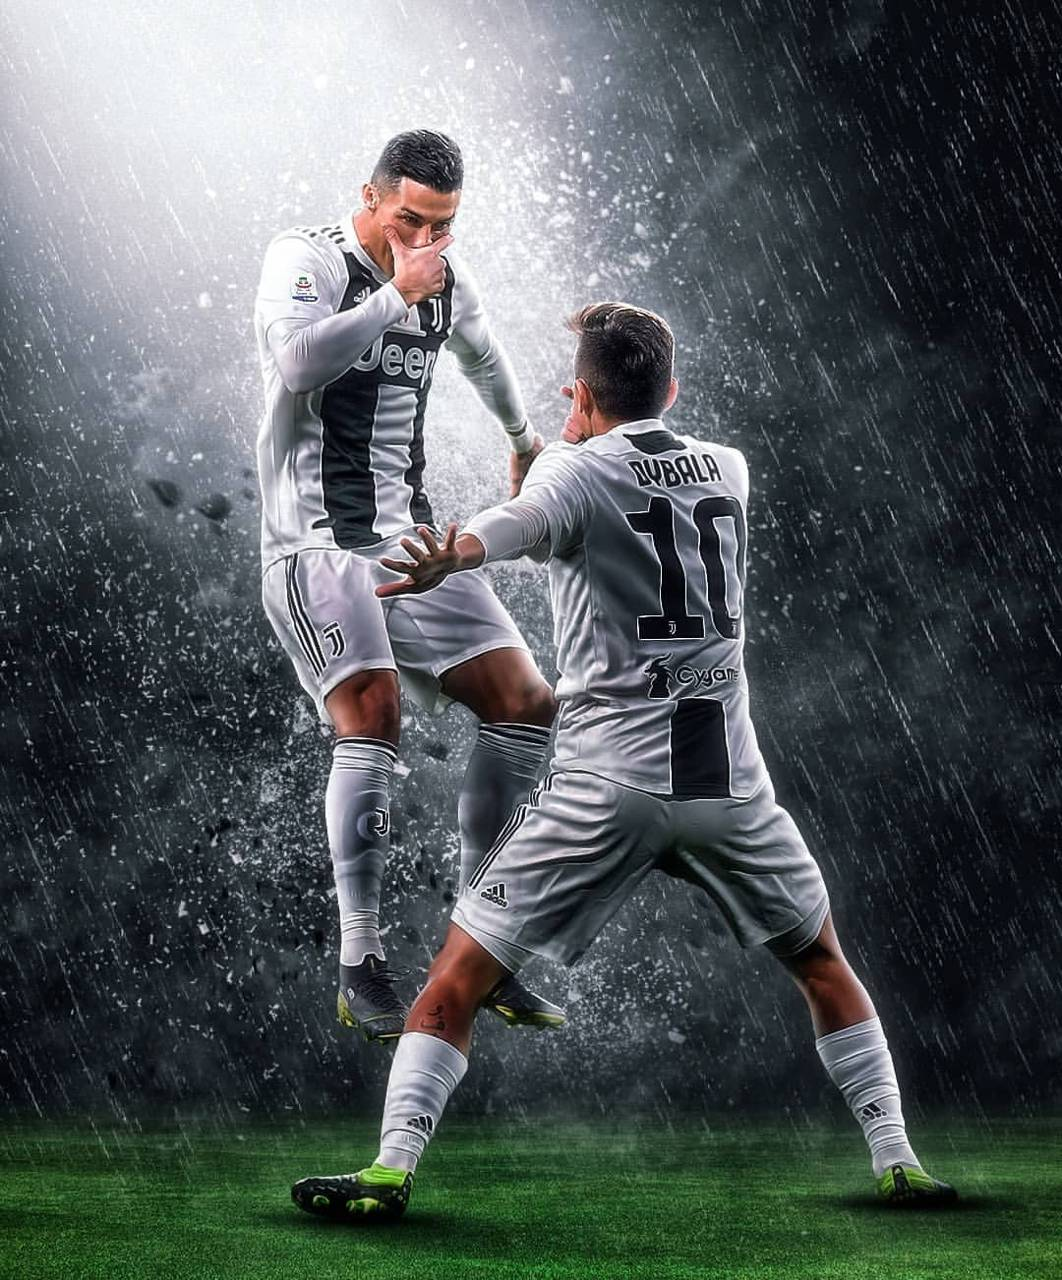 Cr7 Dybala Wallpaper By Cracksfc 99 Free On Zedge Cristiano Ronaldo Juventus Ronaldo Juventus Ronaldo Football